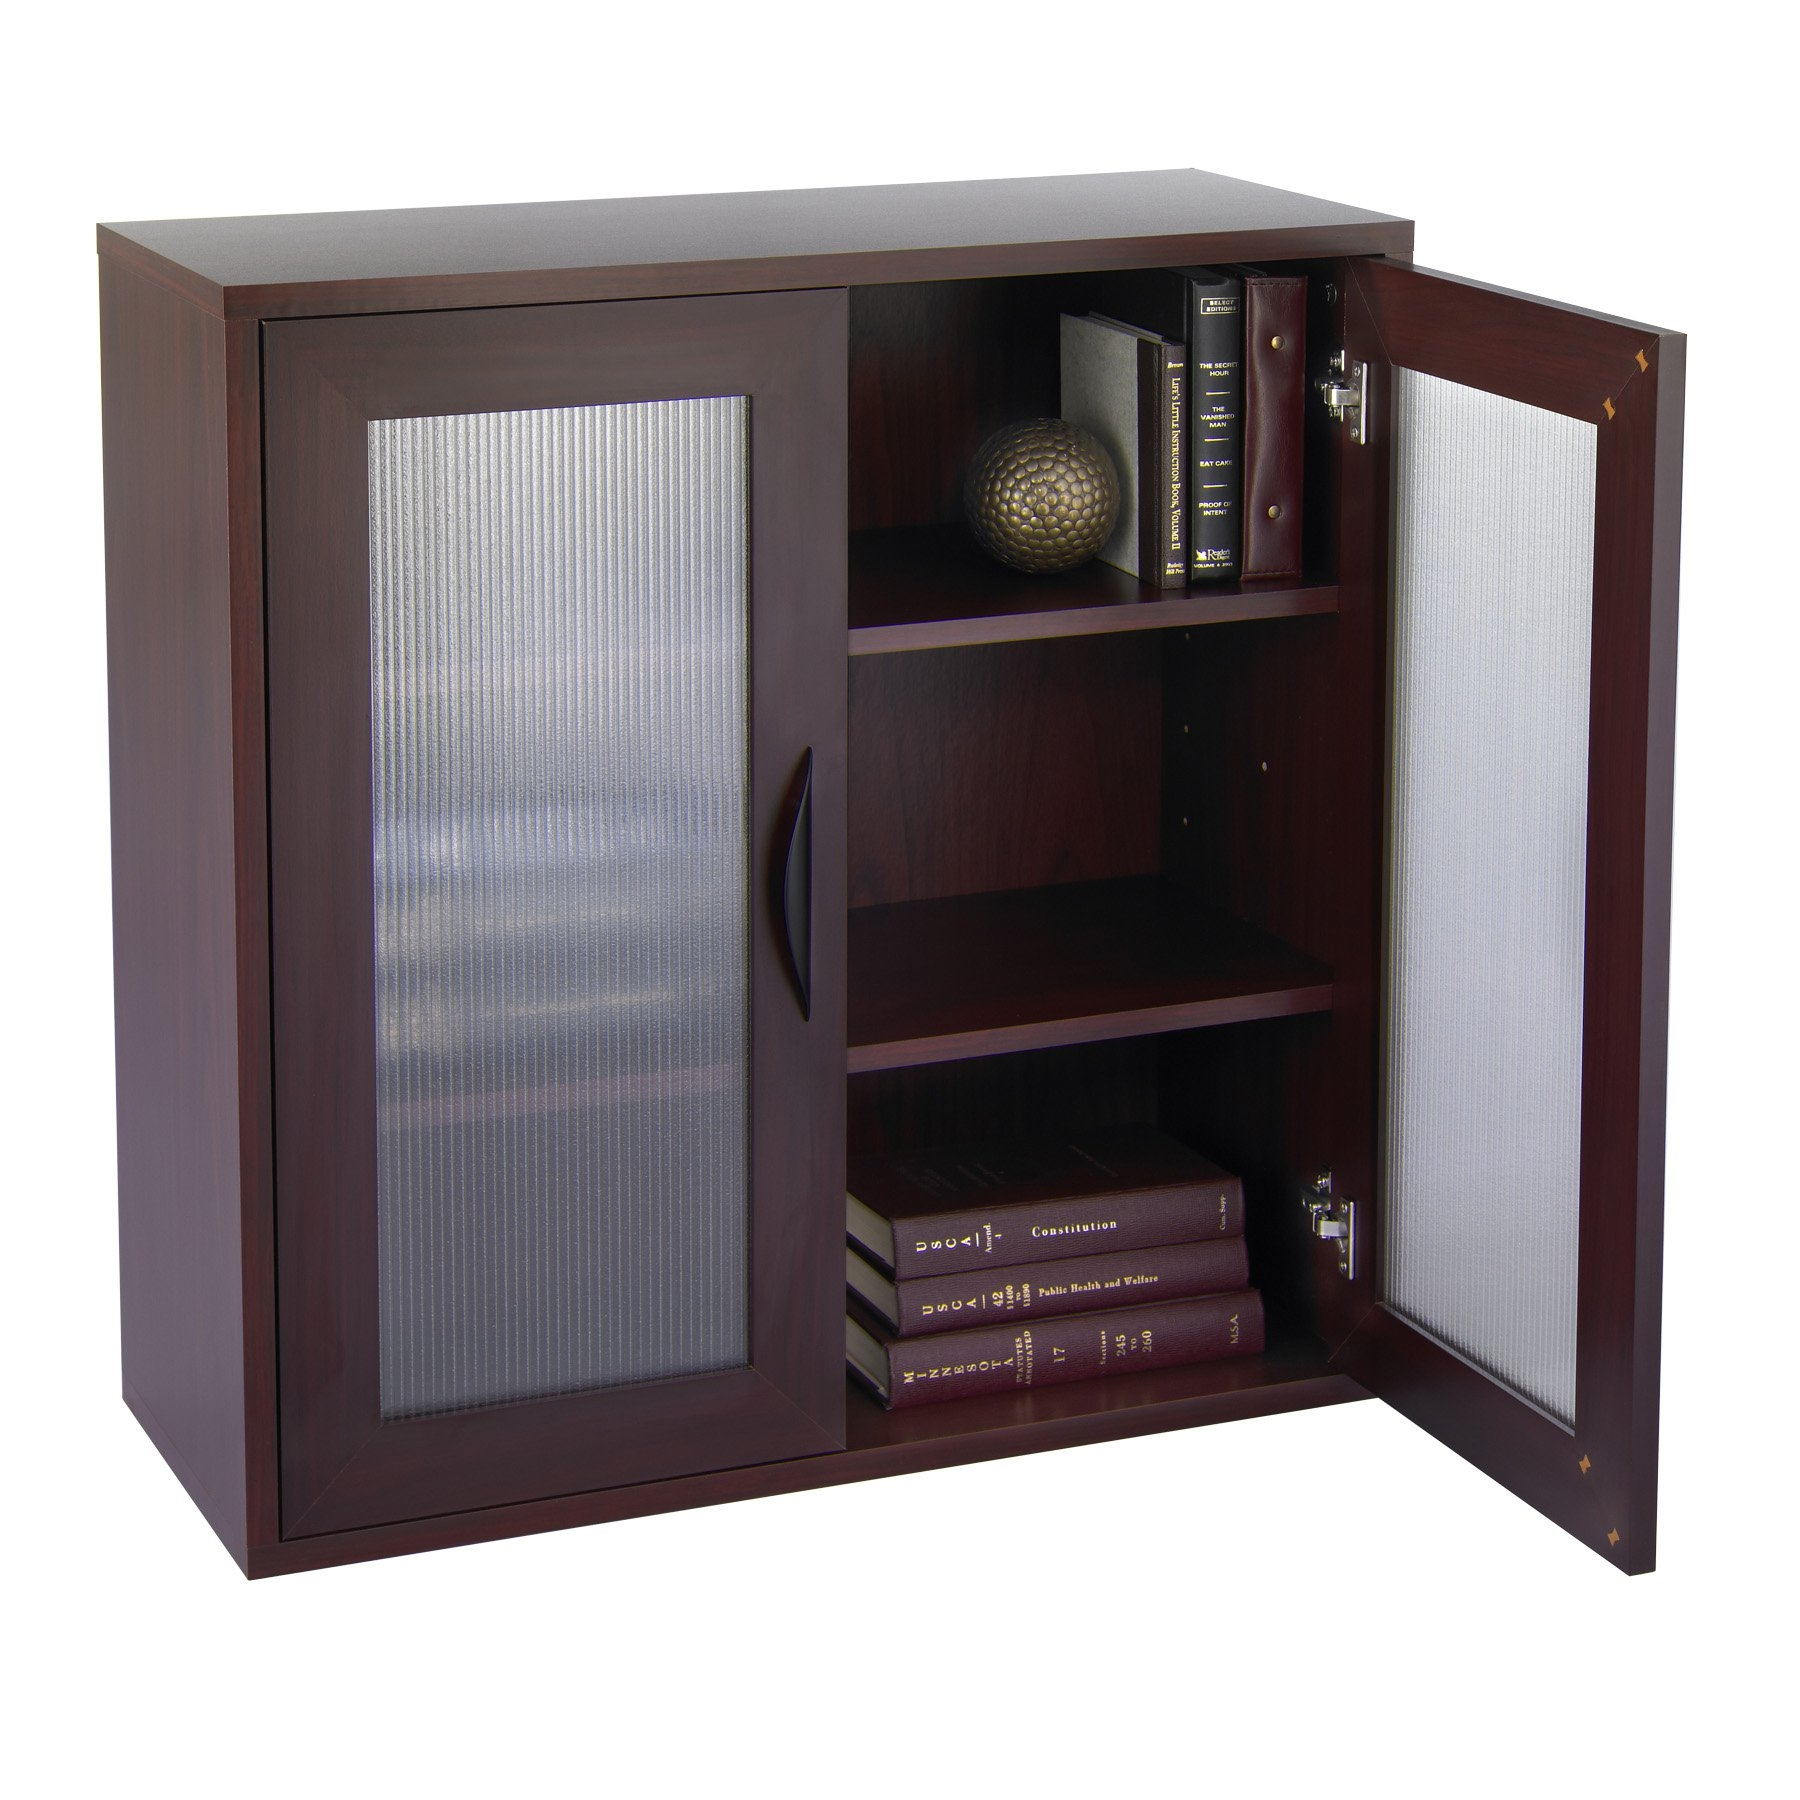 Storage Bookcase With Glass Doors 30 In High Mahogany Walmart With Bookcase With Doors (View 11 of 15)